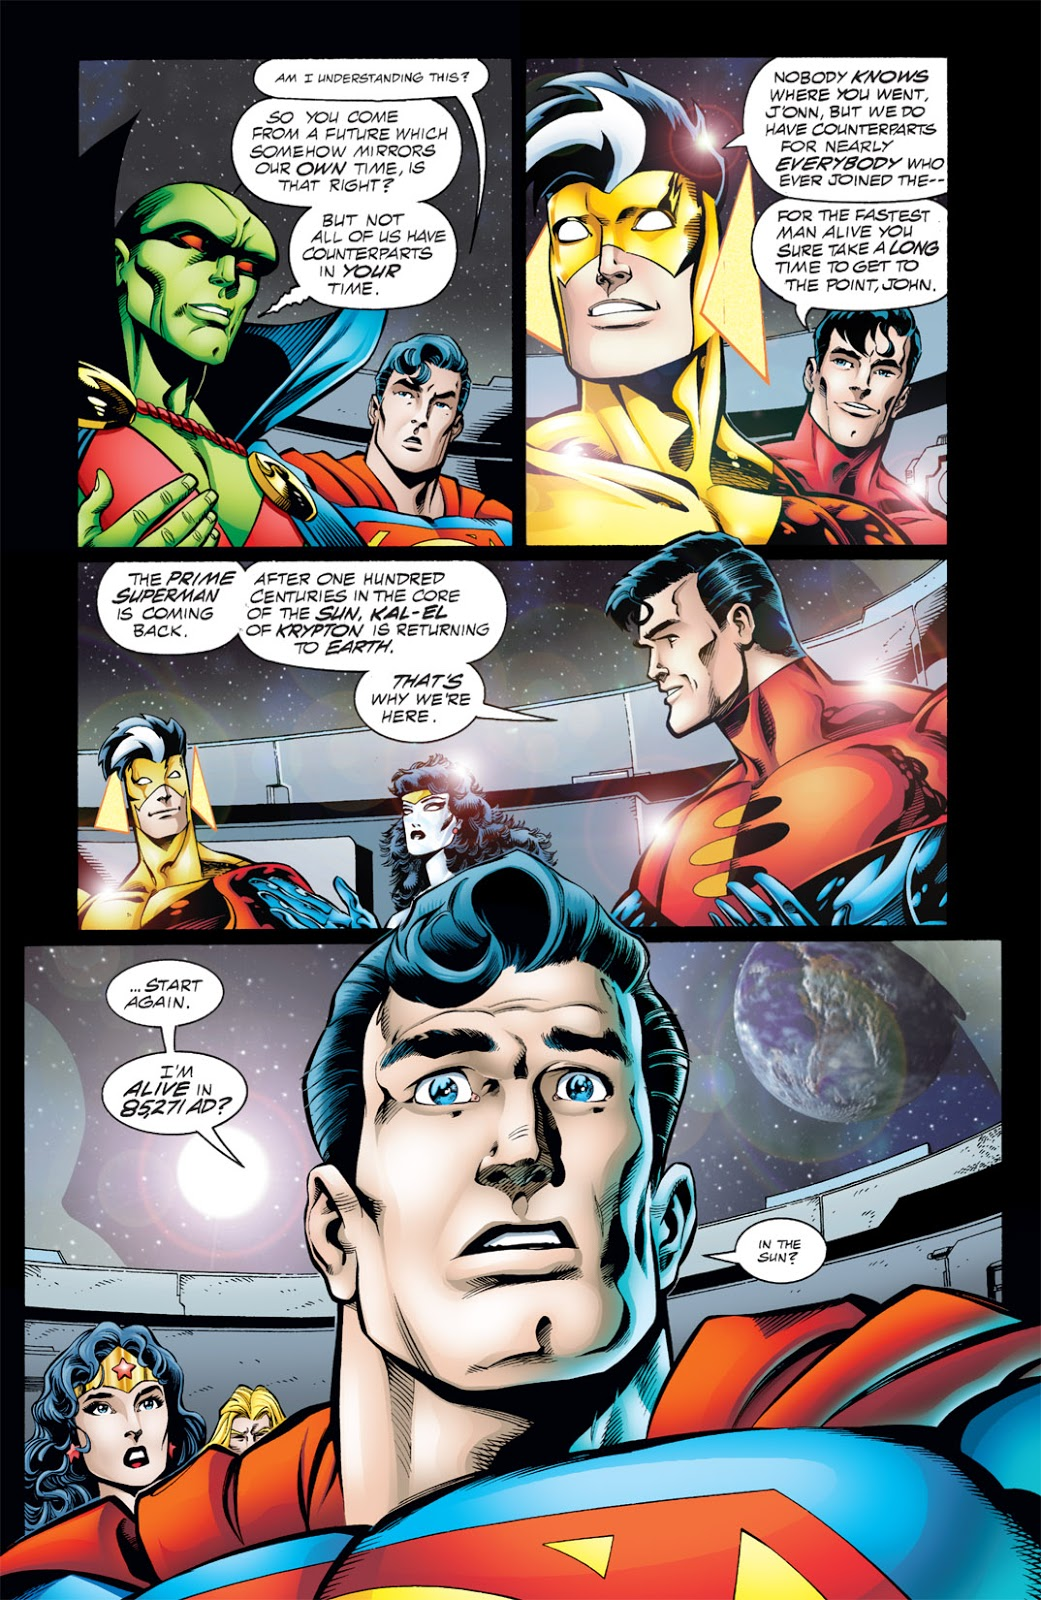 In 'DC One Million' (1998) #1, Kal Kent informs the Justice League of the return of Superman Prime One Million in 85,271 AD from the super sun.